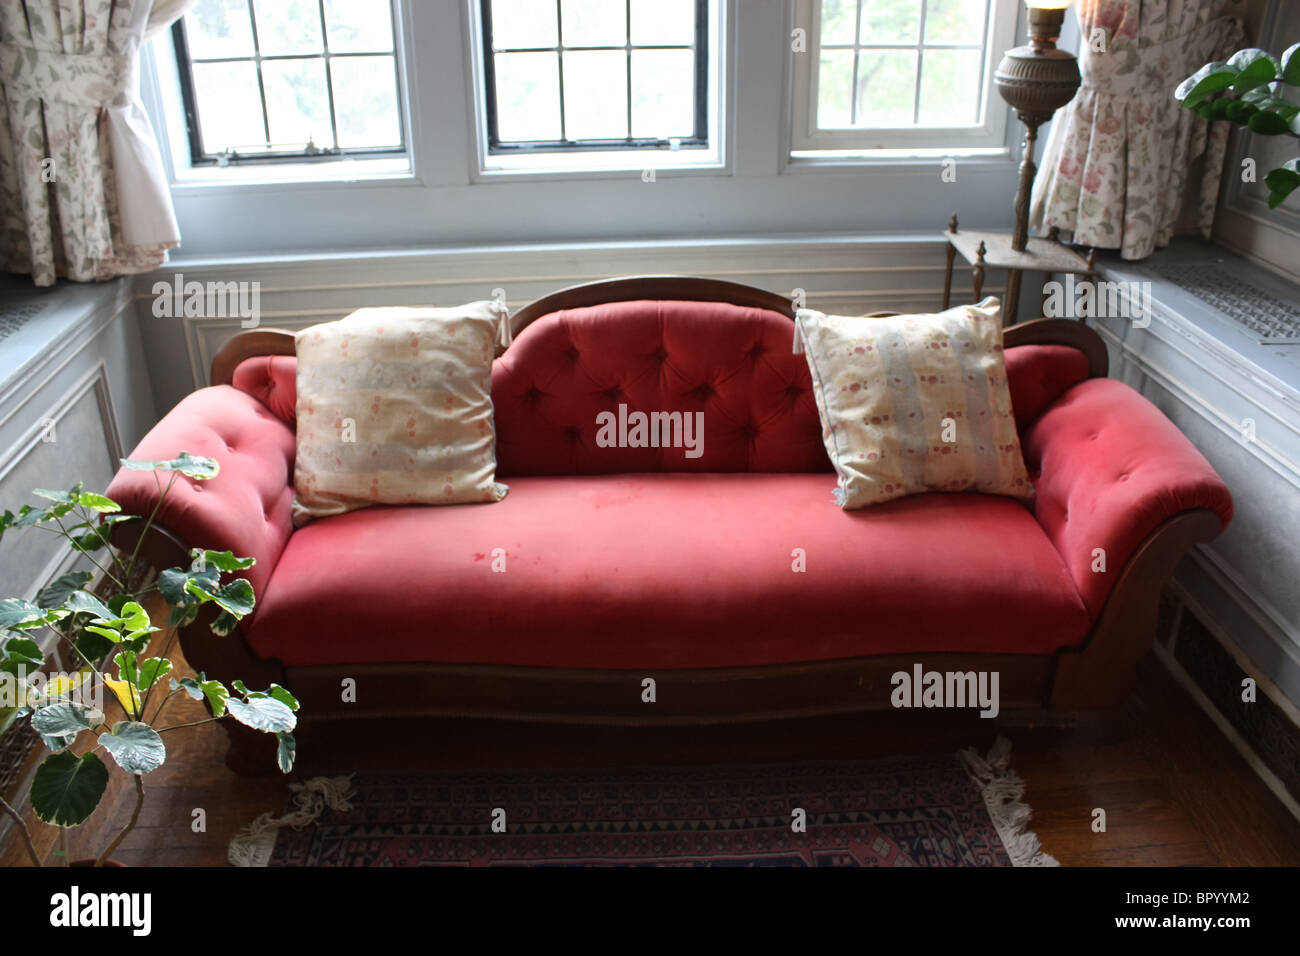 retro red couch furniture mansion - Stock Image